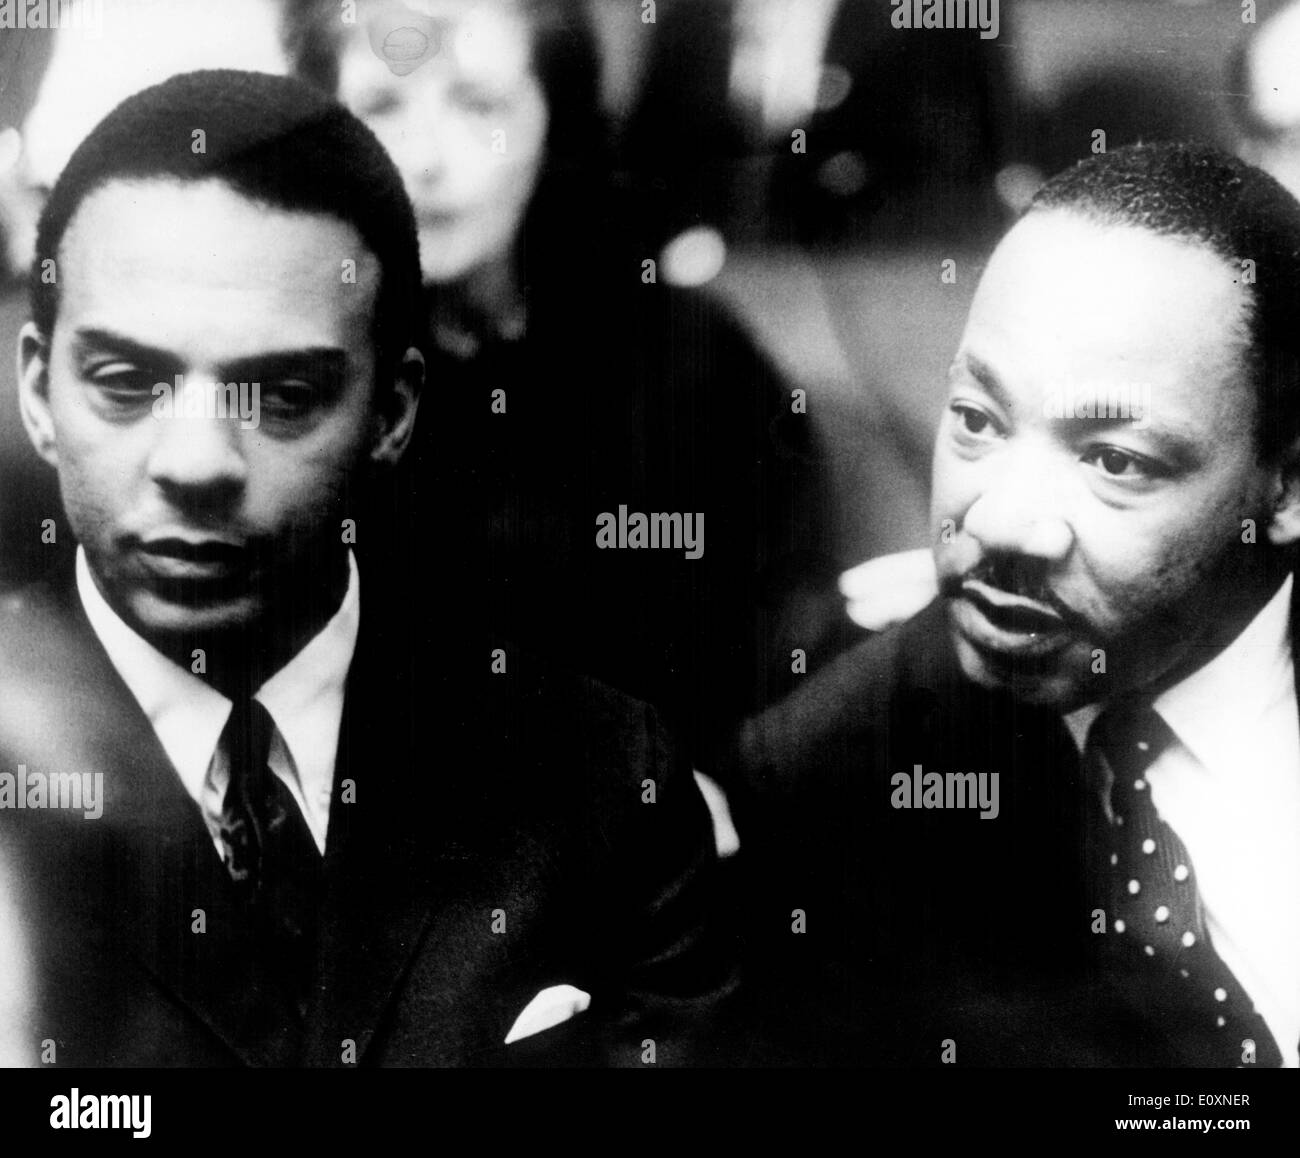 Martin Luther King Jr. at the 'Pacem in Terris' Peace Conference Stock Photo